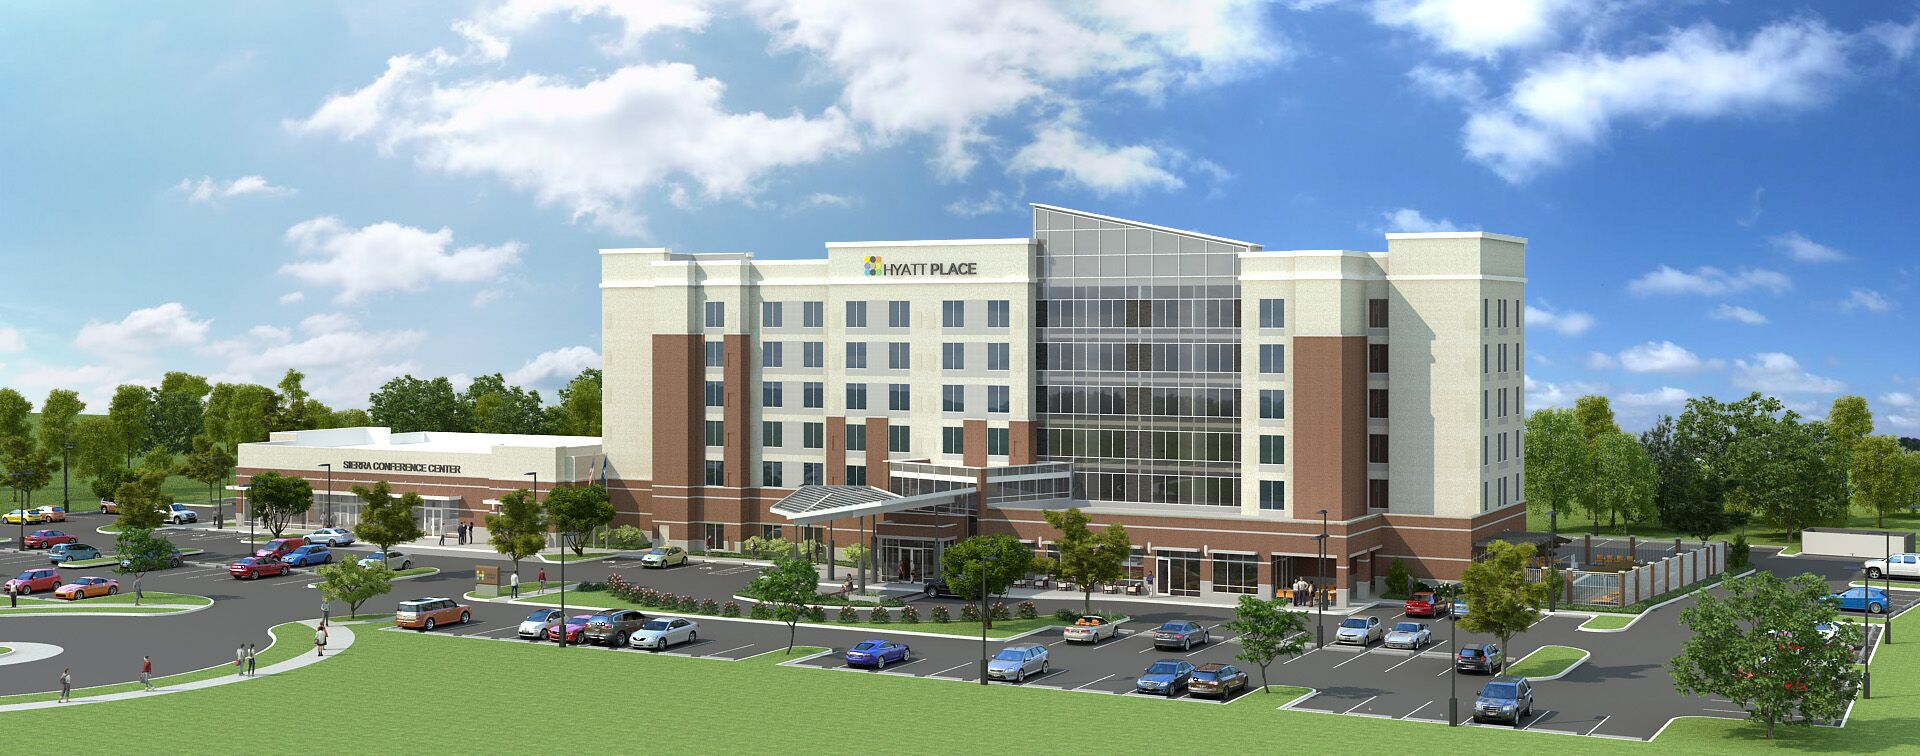 Impact plans development of Hyatt Place in Wesley Chapel